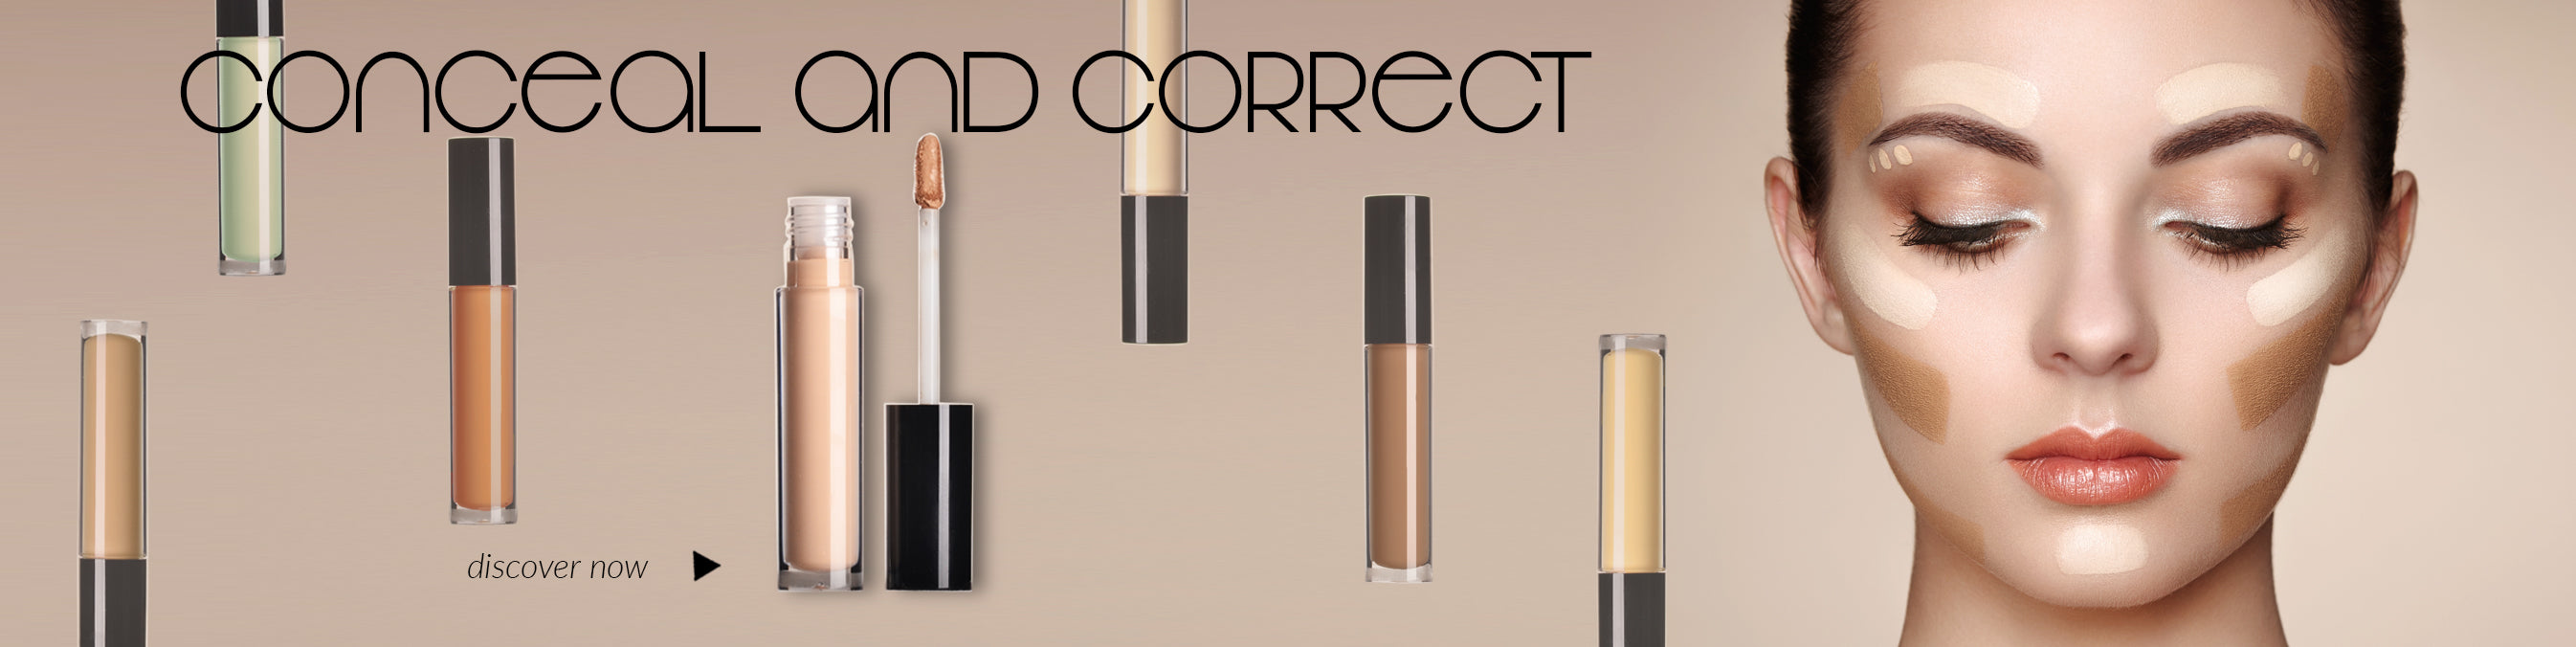 "data-fontfamily=""Raleway,sans-serif"" 													data-fontcolor=""#bd0000"" 													data-fontweight=""900"" 													data-ypos=""35"" 													data-xpos=""9"" 													data-otherstyle="""">  													<br></div> 												<div class=""text animate""  													data-animate=""bounceIn""  													data-delay=""750"" 													data-fontsize=""3"" 													data-fontfamily=""Raleway,sans-serif"" 													data-fontcolor=""#FFFFFF"" 													data-fontweight=""900"" 													data-ypos=""57"" 													data-xpos=""6"" 													data-otherstyle=""text-transform: uppercase;""> 													</div>  												<div class=""text animate""  													data-animate=""lightSpeedIn""  													data-delay=""800"" 													data-fontsize=""4""    												data-fontfamily=""Pamega Script"" 													data-fontcolor=""#FFFFFF"" 													data-fontweight=""900"" 													data-ypos=""30"" 													data-xpos=""30"" 													data-otherstyle="""">   													Get Your Gloss On</div>   <a href=""/products/lip-gloss-1"" class=""button animate""                             data-animate=""fadeIn""                            data-delay=""2000""                                                     data-xpos=""28""                           data-ypos=""70"">                            Shop Now </a>"